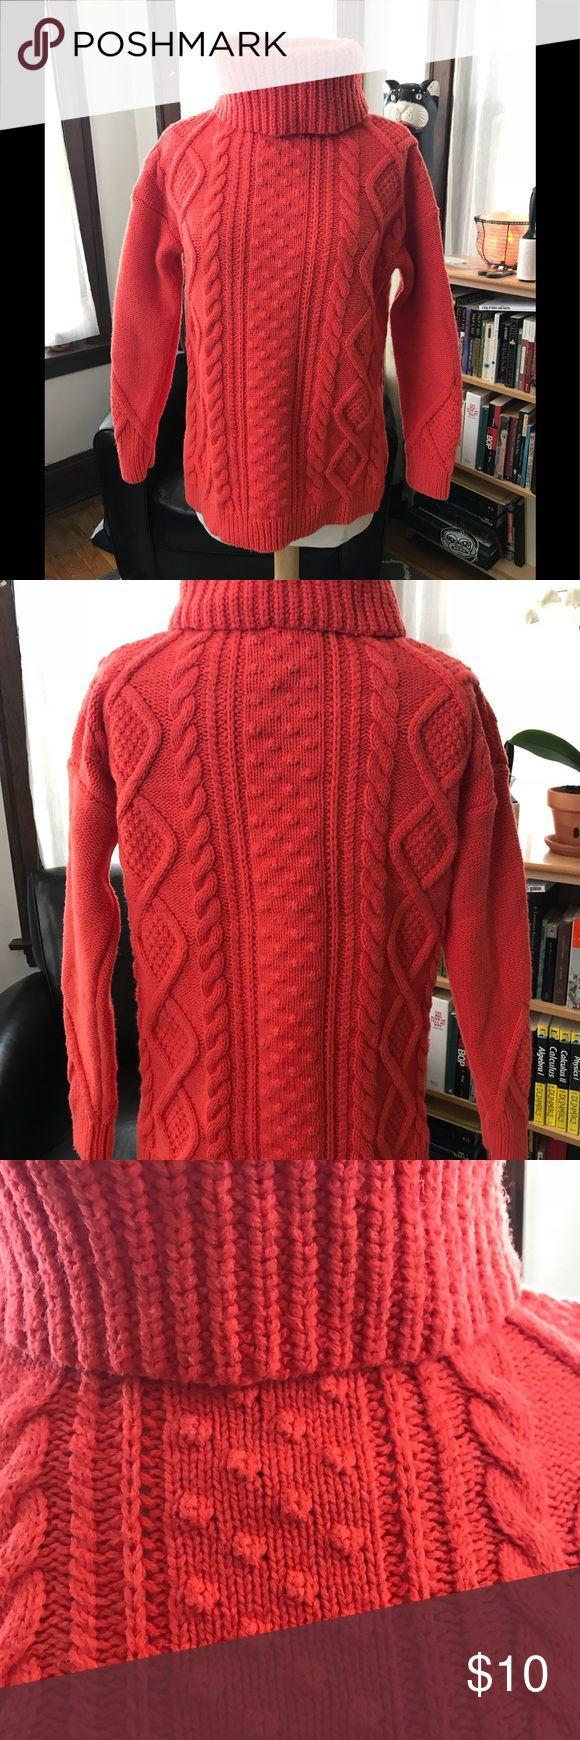 Lands' End orange turtleneck sweater sz S Wrap yourself in this super warm cozy sweater by Lands' End. Size S/P, high turtleneck. Incredibly comfortable. Great vibrant orange color. Imagine yourself in this weather with nice hot cup of tea, or hot cocoa, watching your favorite movie...total heaven! Materials:  55% Cotton 27% Nylon 13% Acrylic  5% Wool Lands' End Sweaters Cowl & Turtlenecks